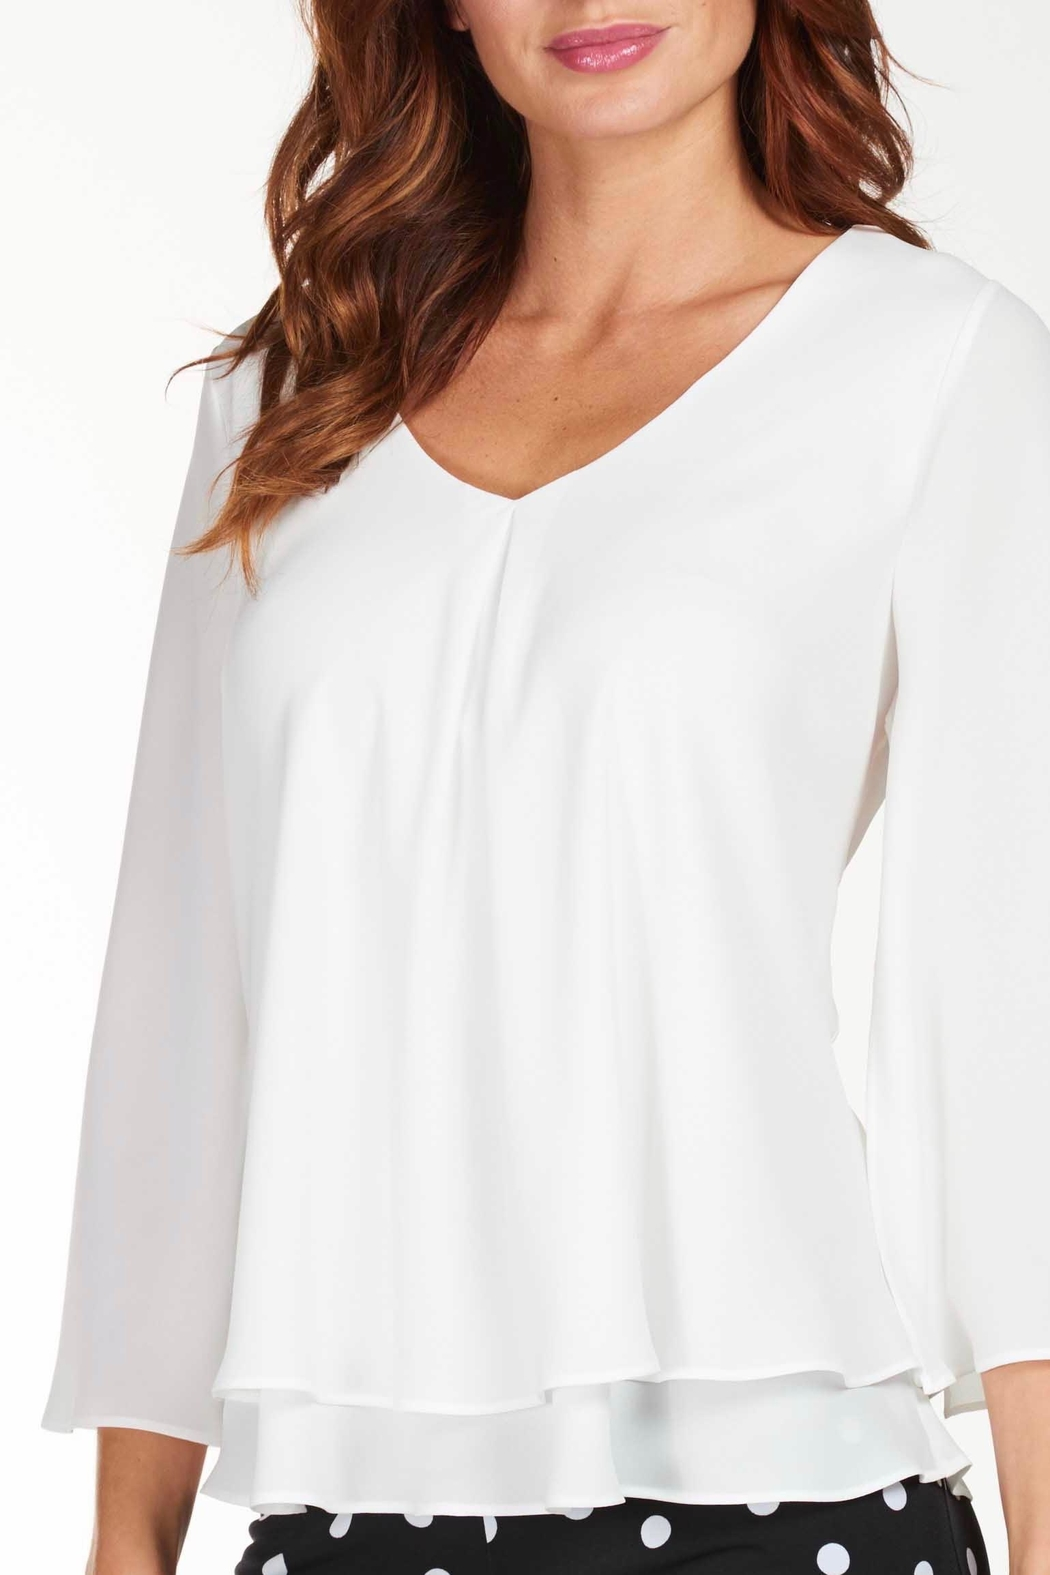 Frank Lyman Woven Knit Blouse - Front Full Image